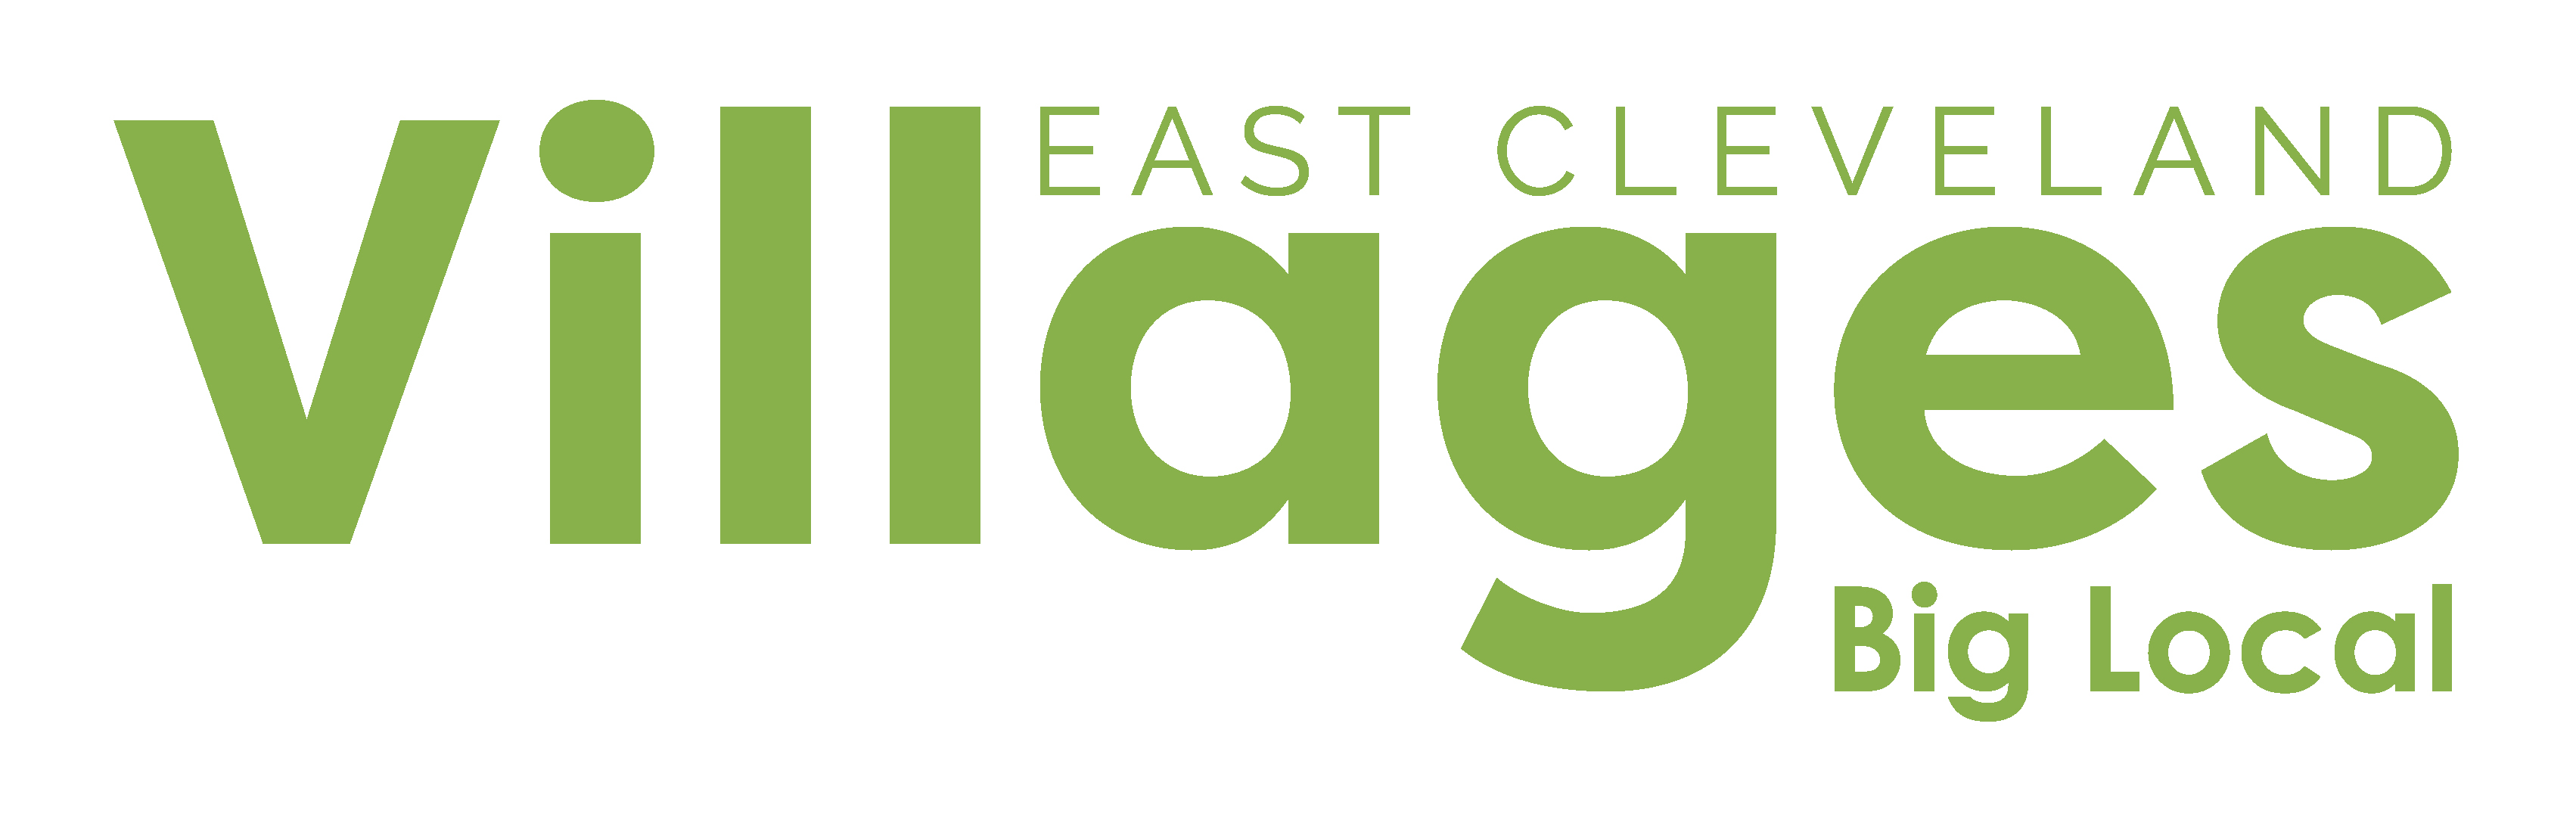 East Cleveland Villages Big Local Plan & Review Meetings Continue